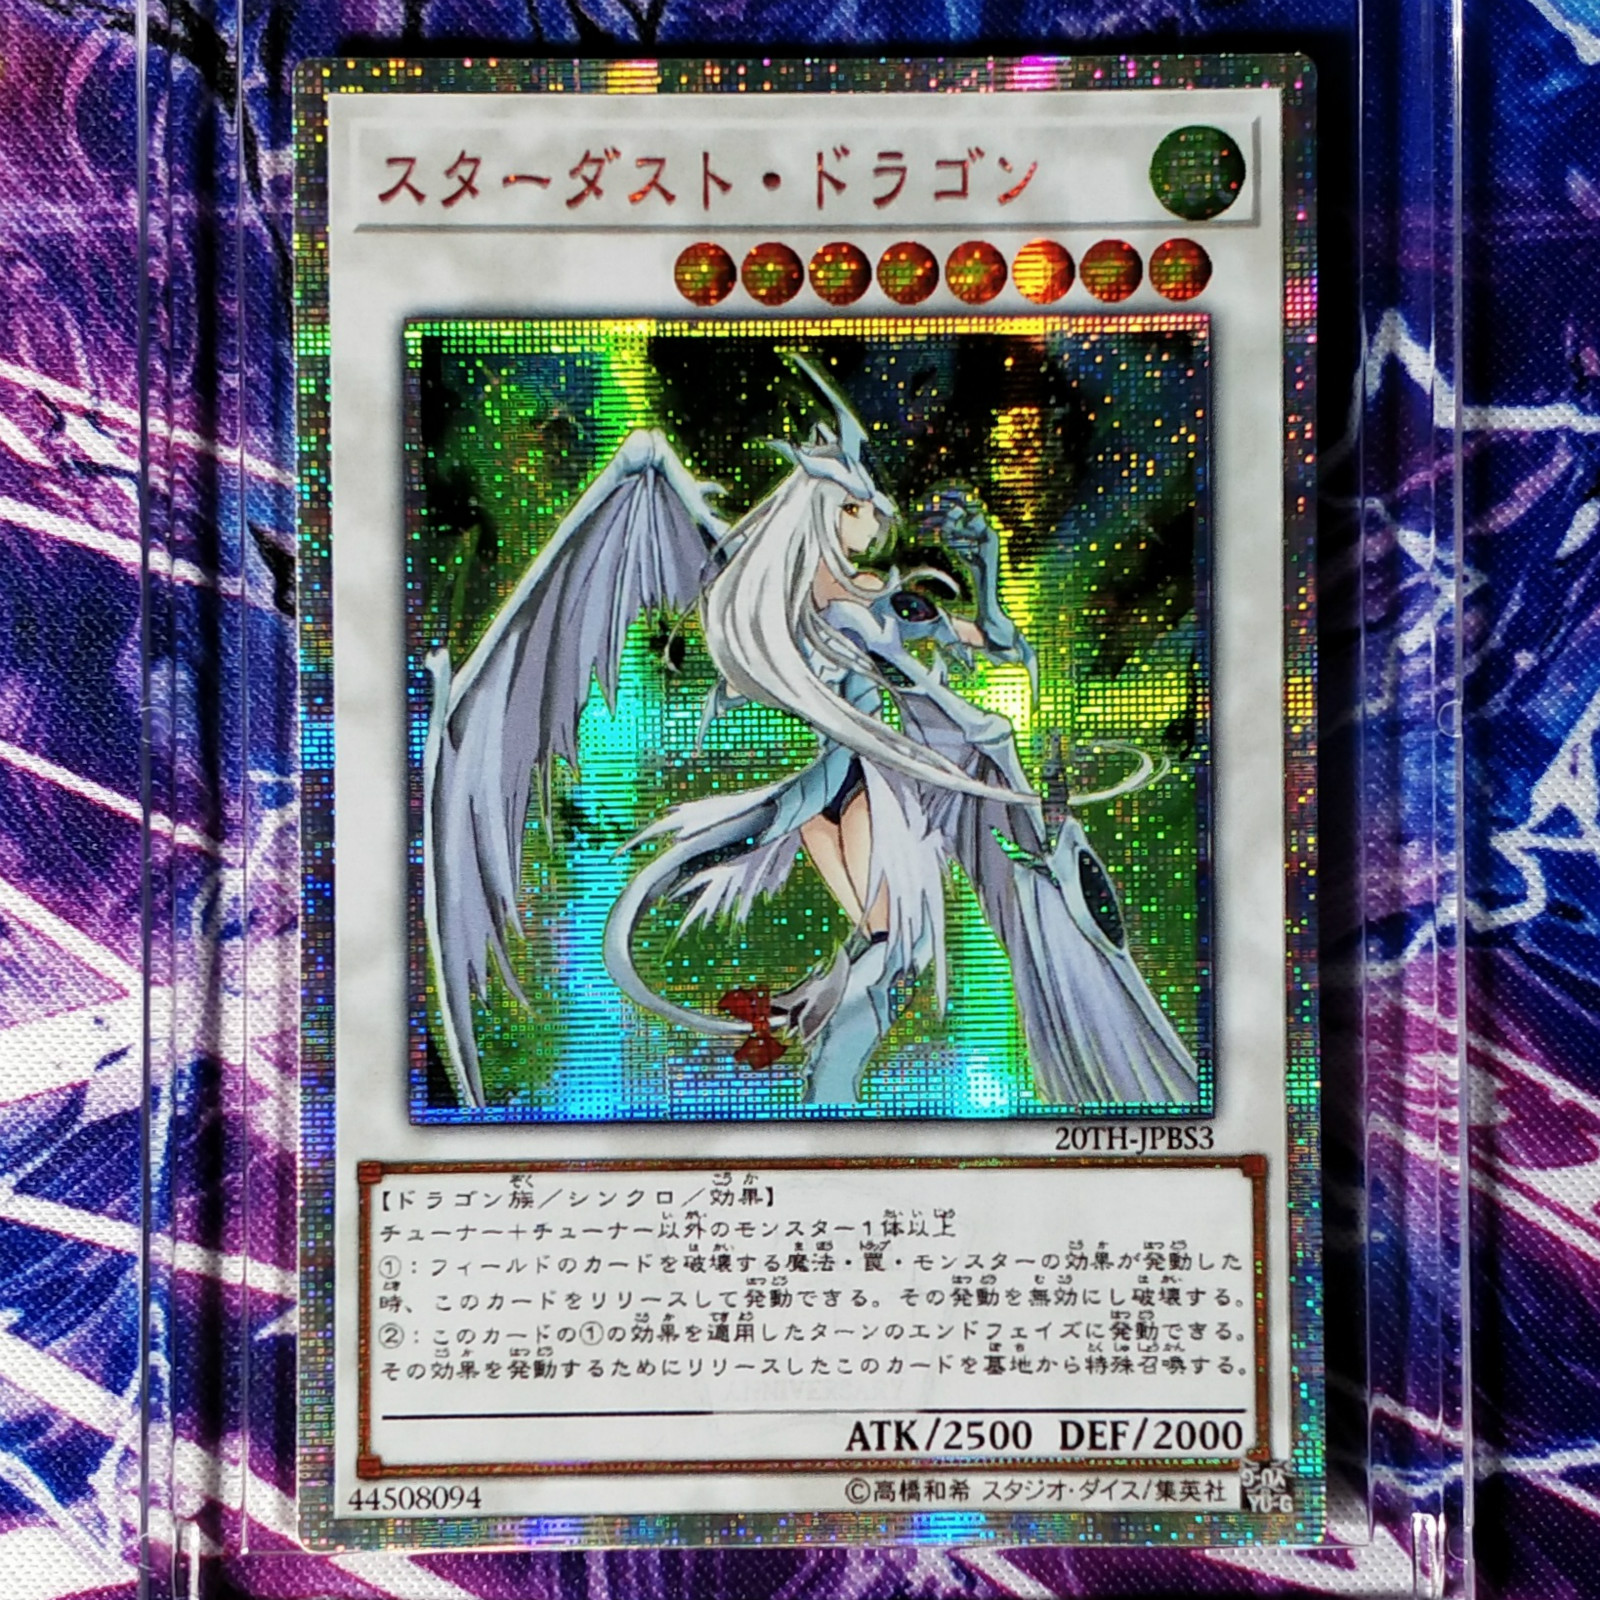 Yu Gi Oh DIY Stardust Dragon Colorful Toys Hobbies Hobby Collectibles Game Collection Anime Cards